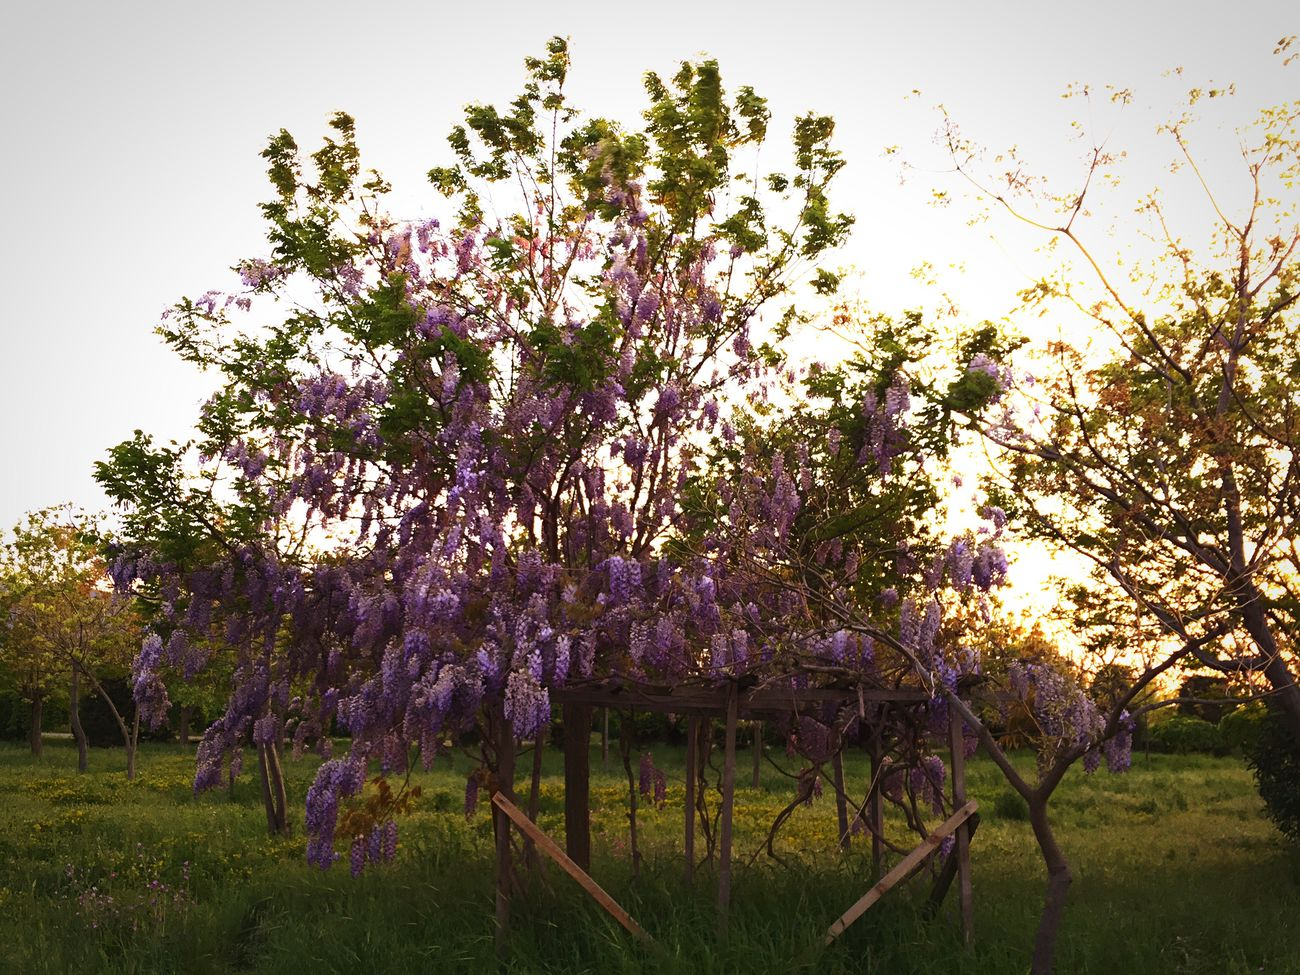 First Eyeem Photo Photooftheday Tree Flower Purple Blossom Growth Nature Beauty In Nature No People Springtime Branch Freshness Fragility Pink Color Scented Sky Outdoors Day Izmir Photography Turkey Kentormani EyeEm Best Shots